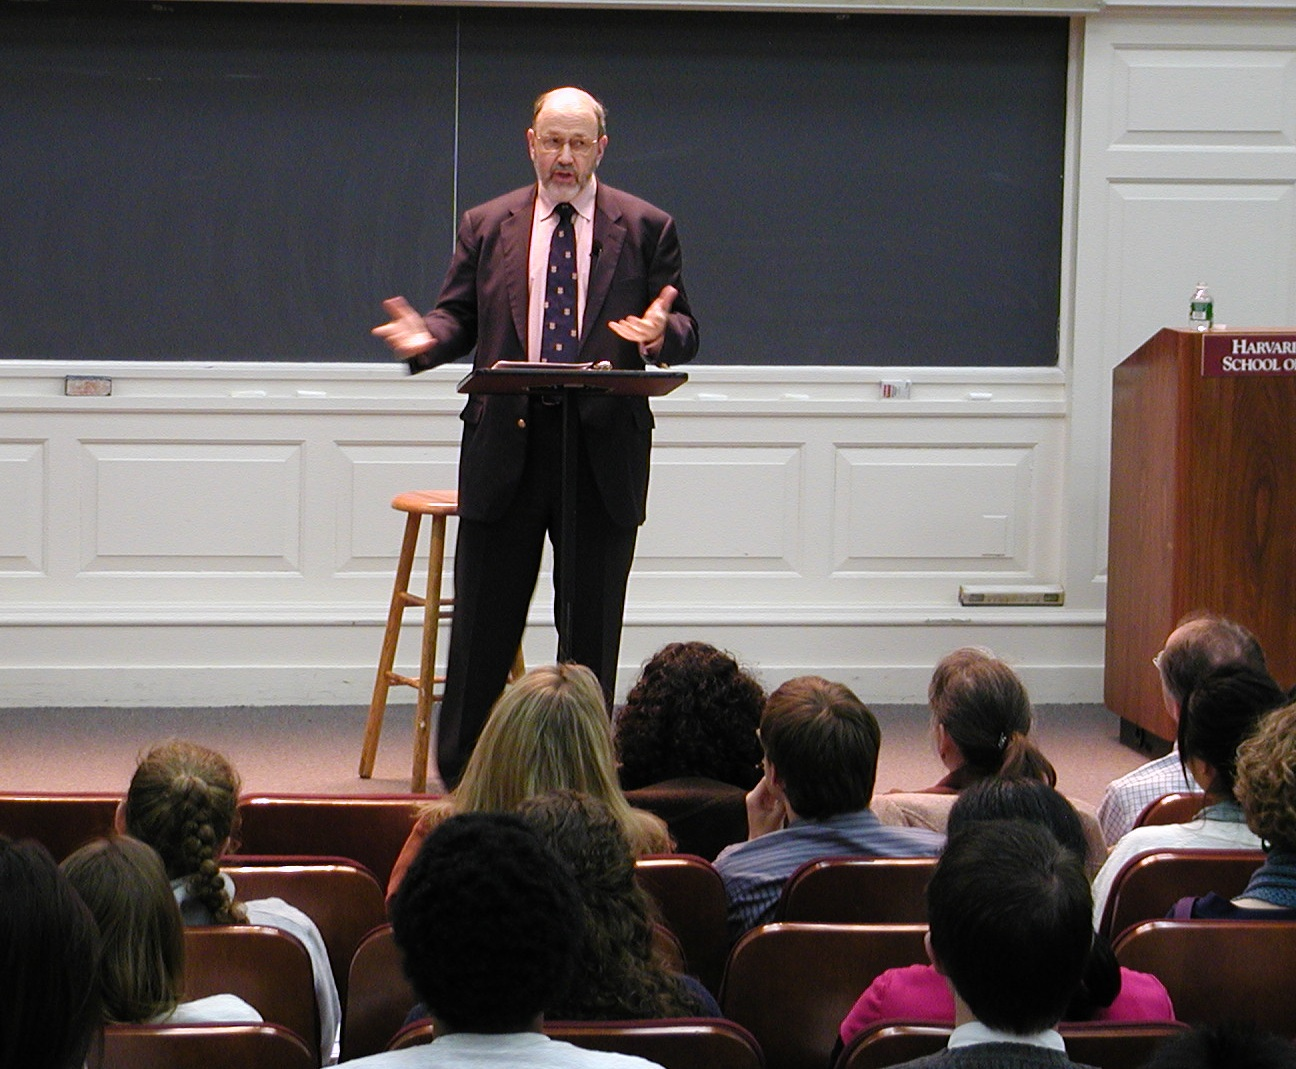 N.T. Wright at Harvard